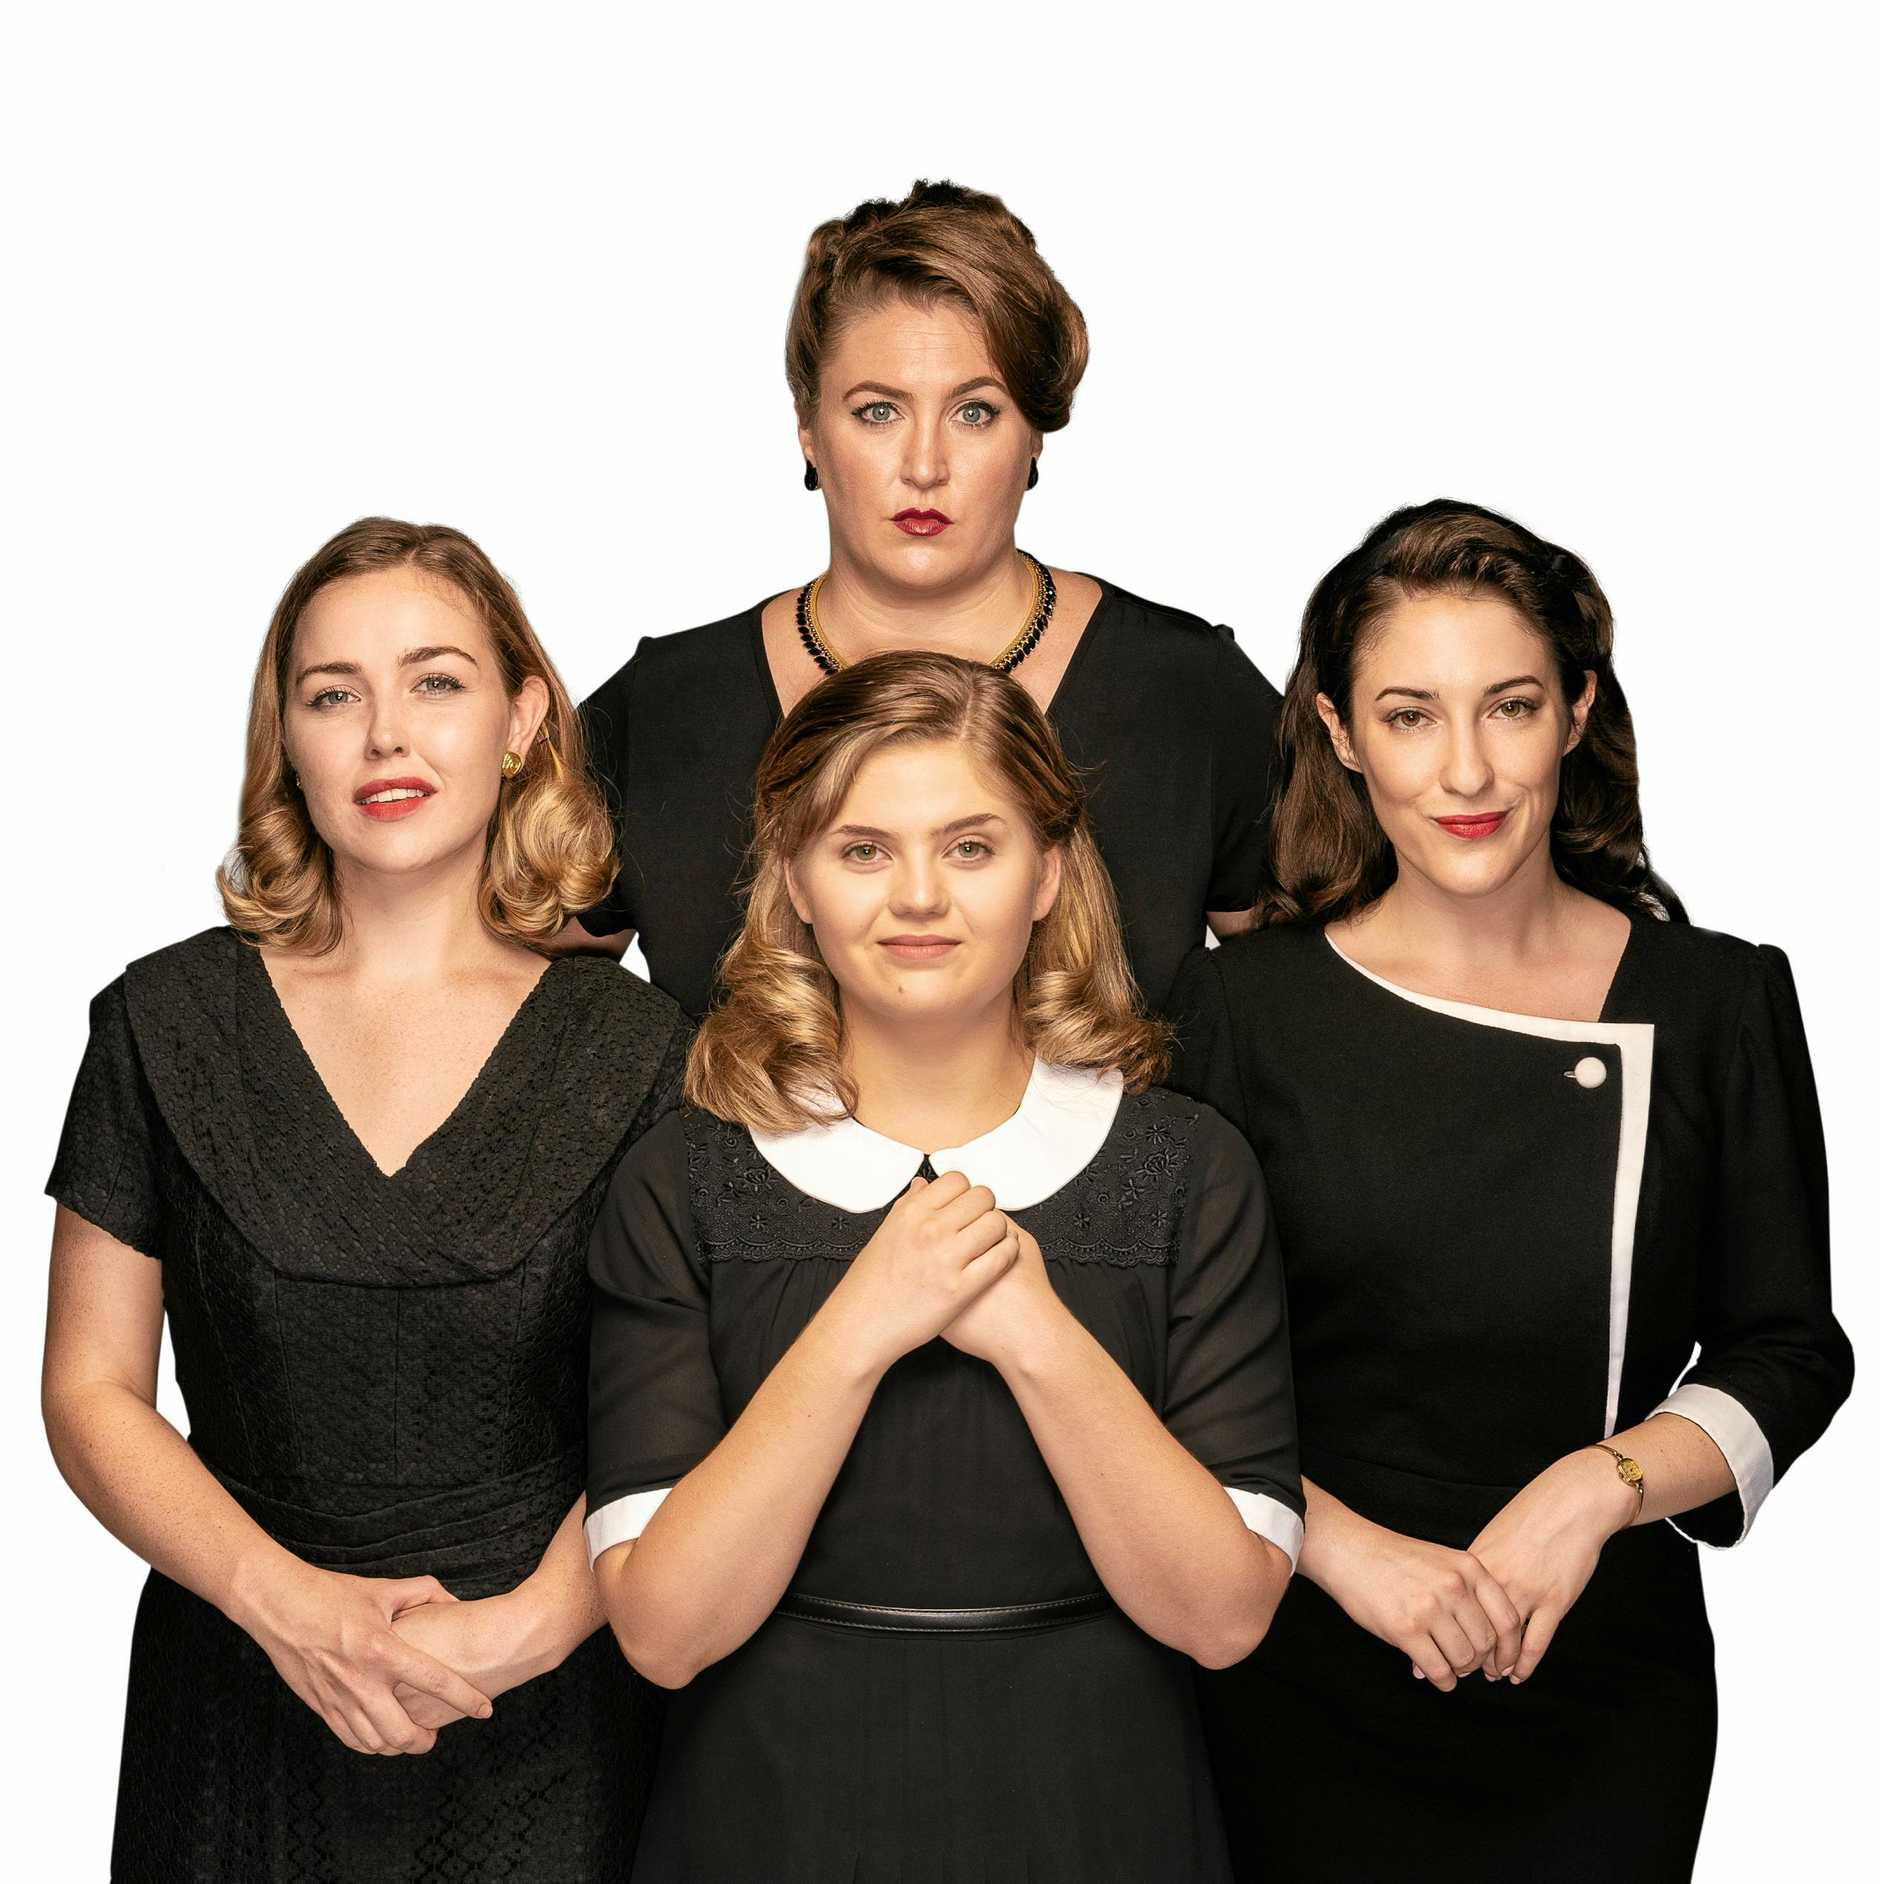 Ipswich Musical Theatre Company will be presenting their latest production, Ladies in Black, from April 26 to May 5.